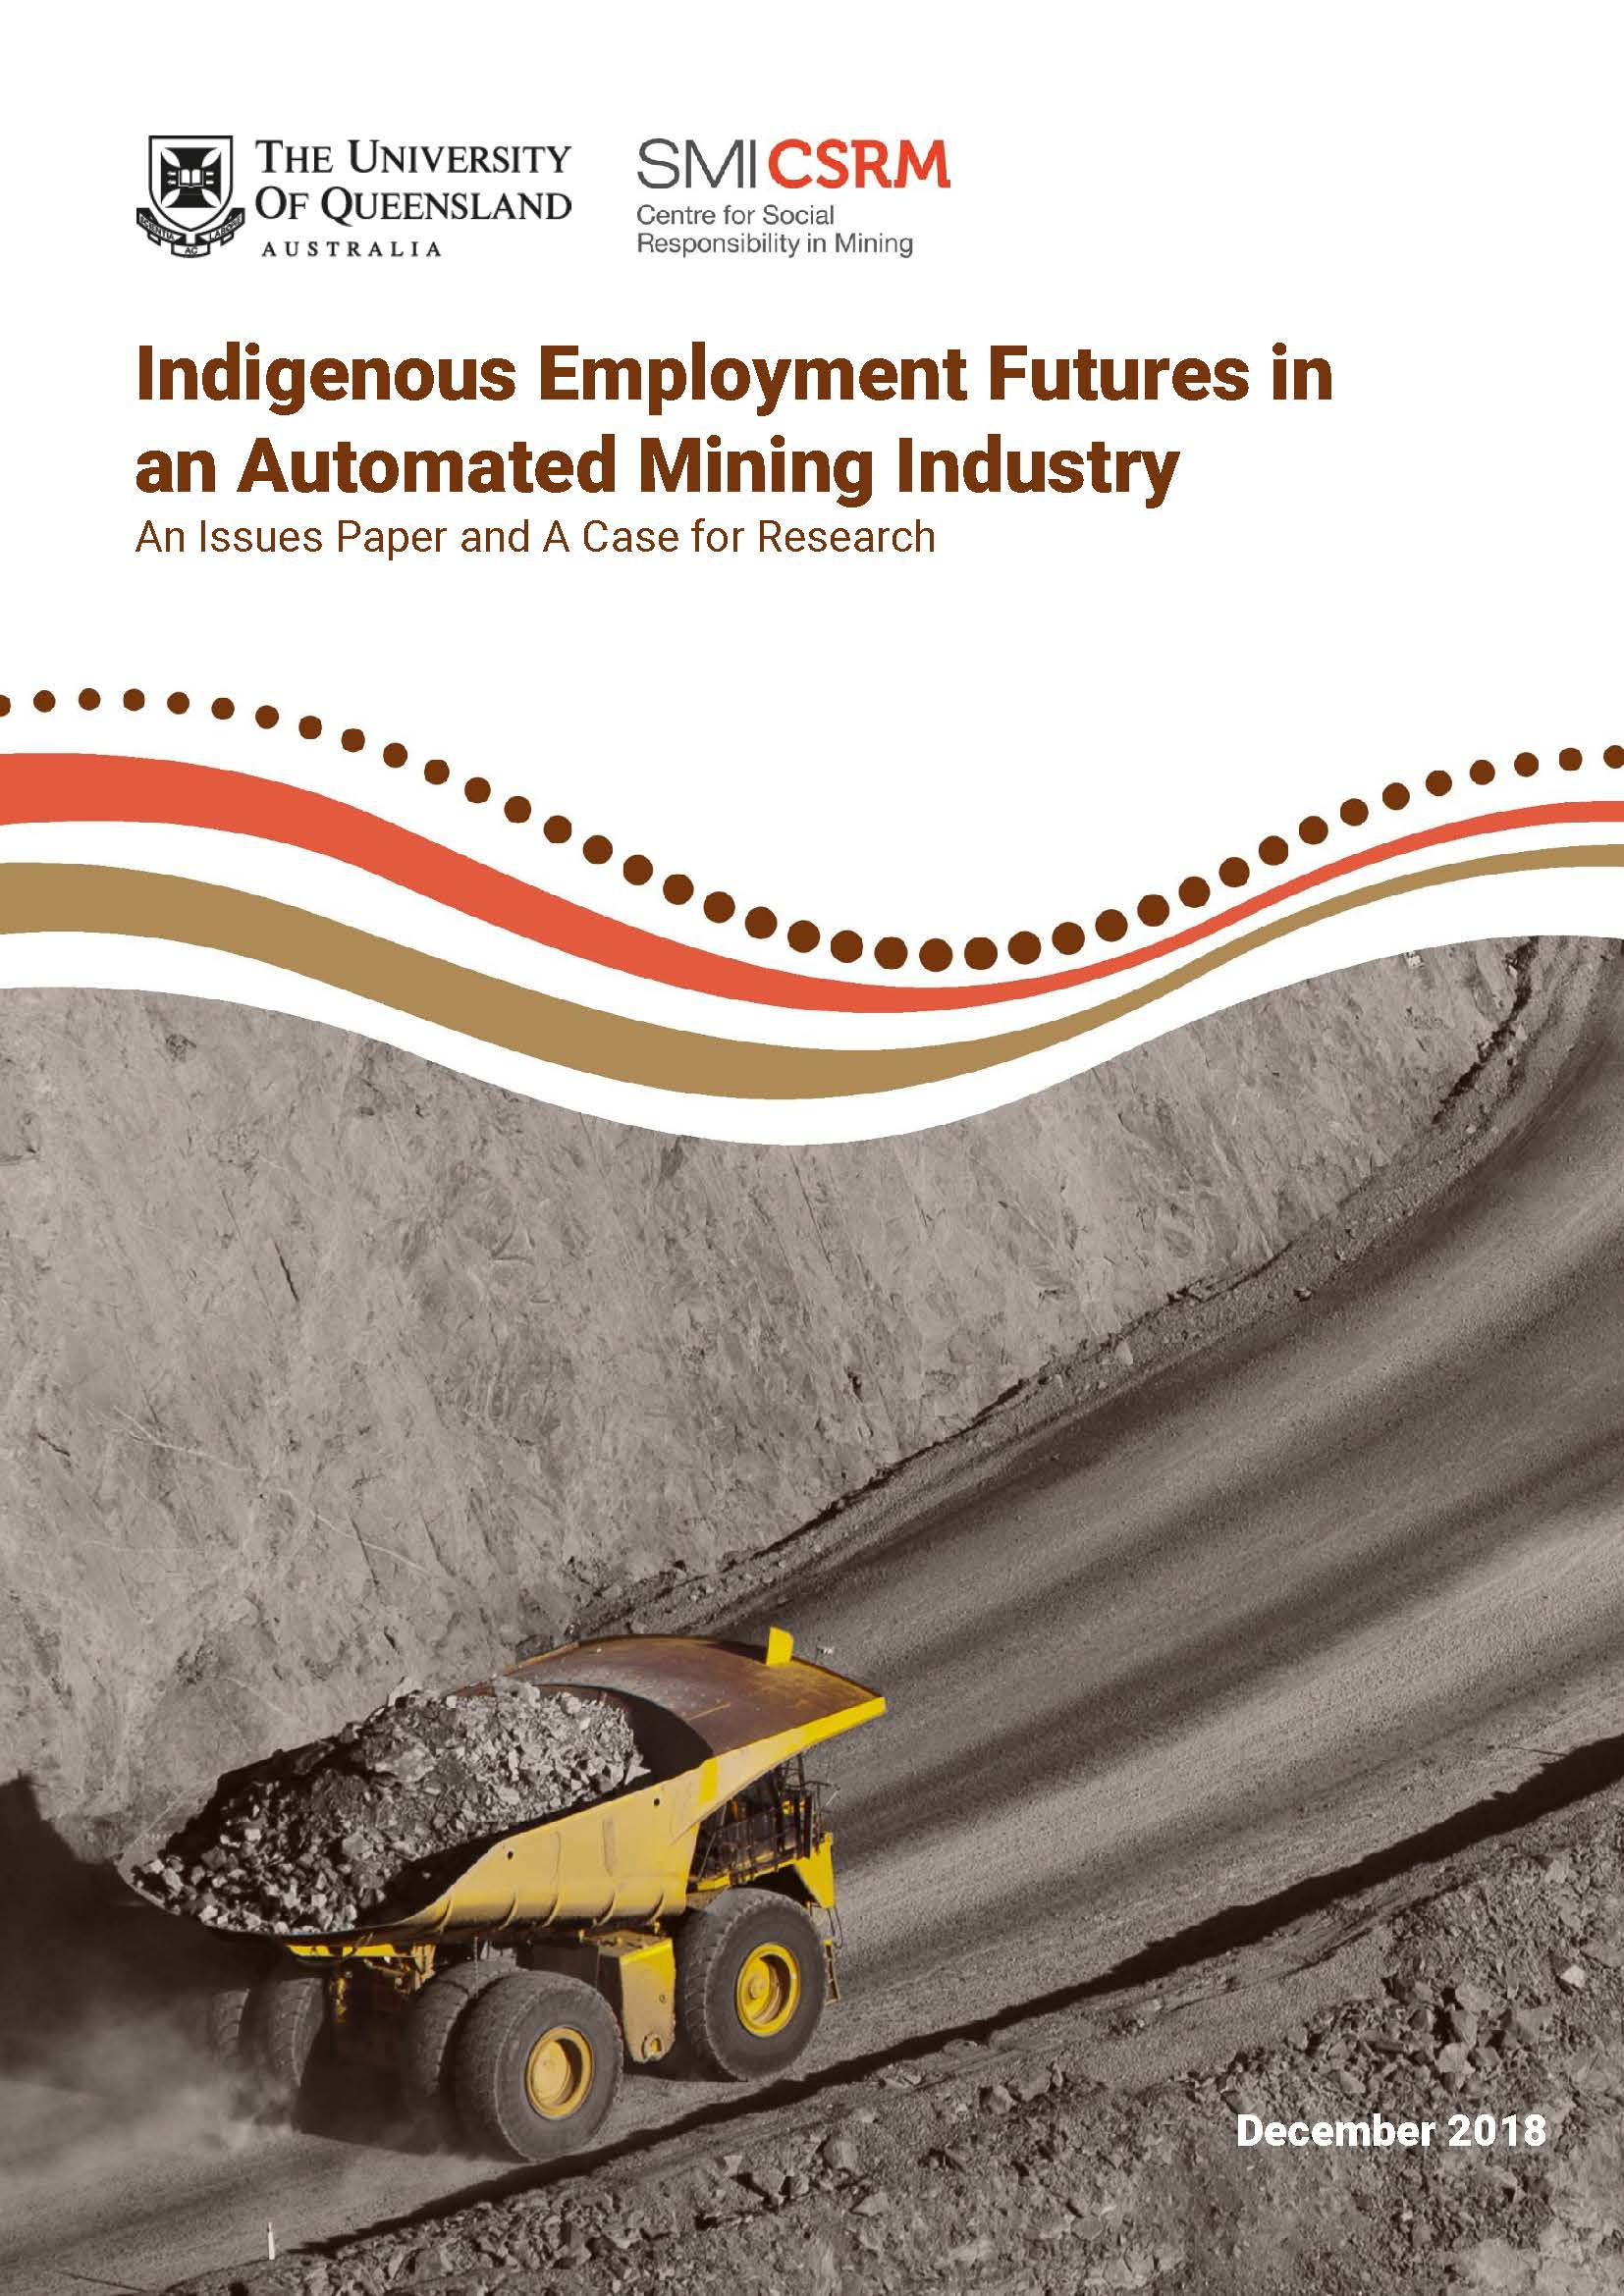 Indigenous employment futures in an automated mining industry